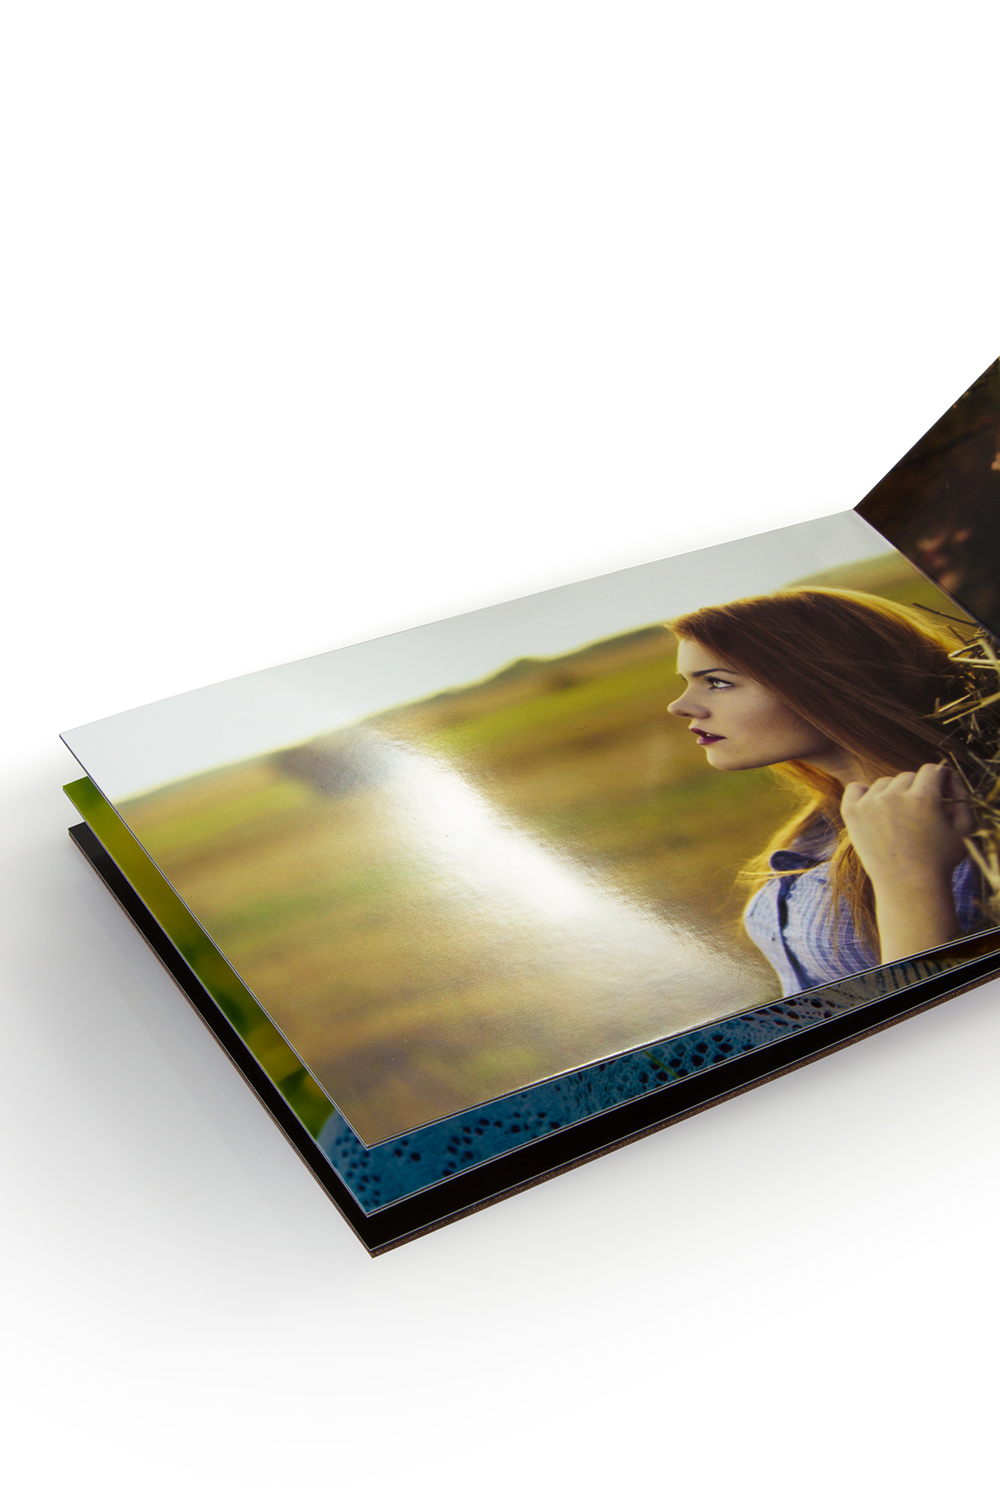 lustre paper Photo paper pro luster has a beautiful luster finish for great color saturation and a soft feel luster finish provides an elegant surface that resists fingerprints.